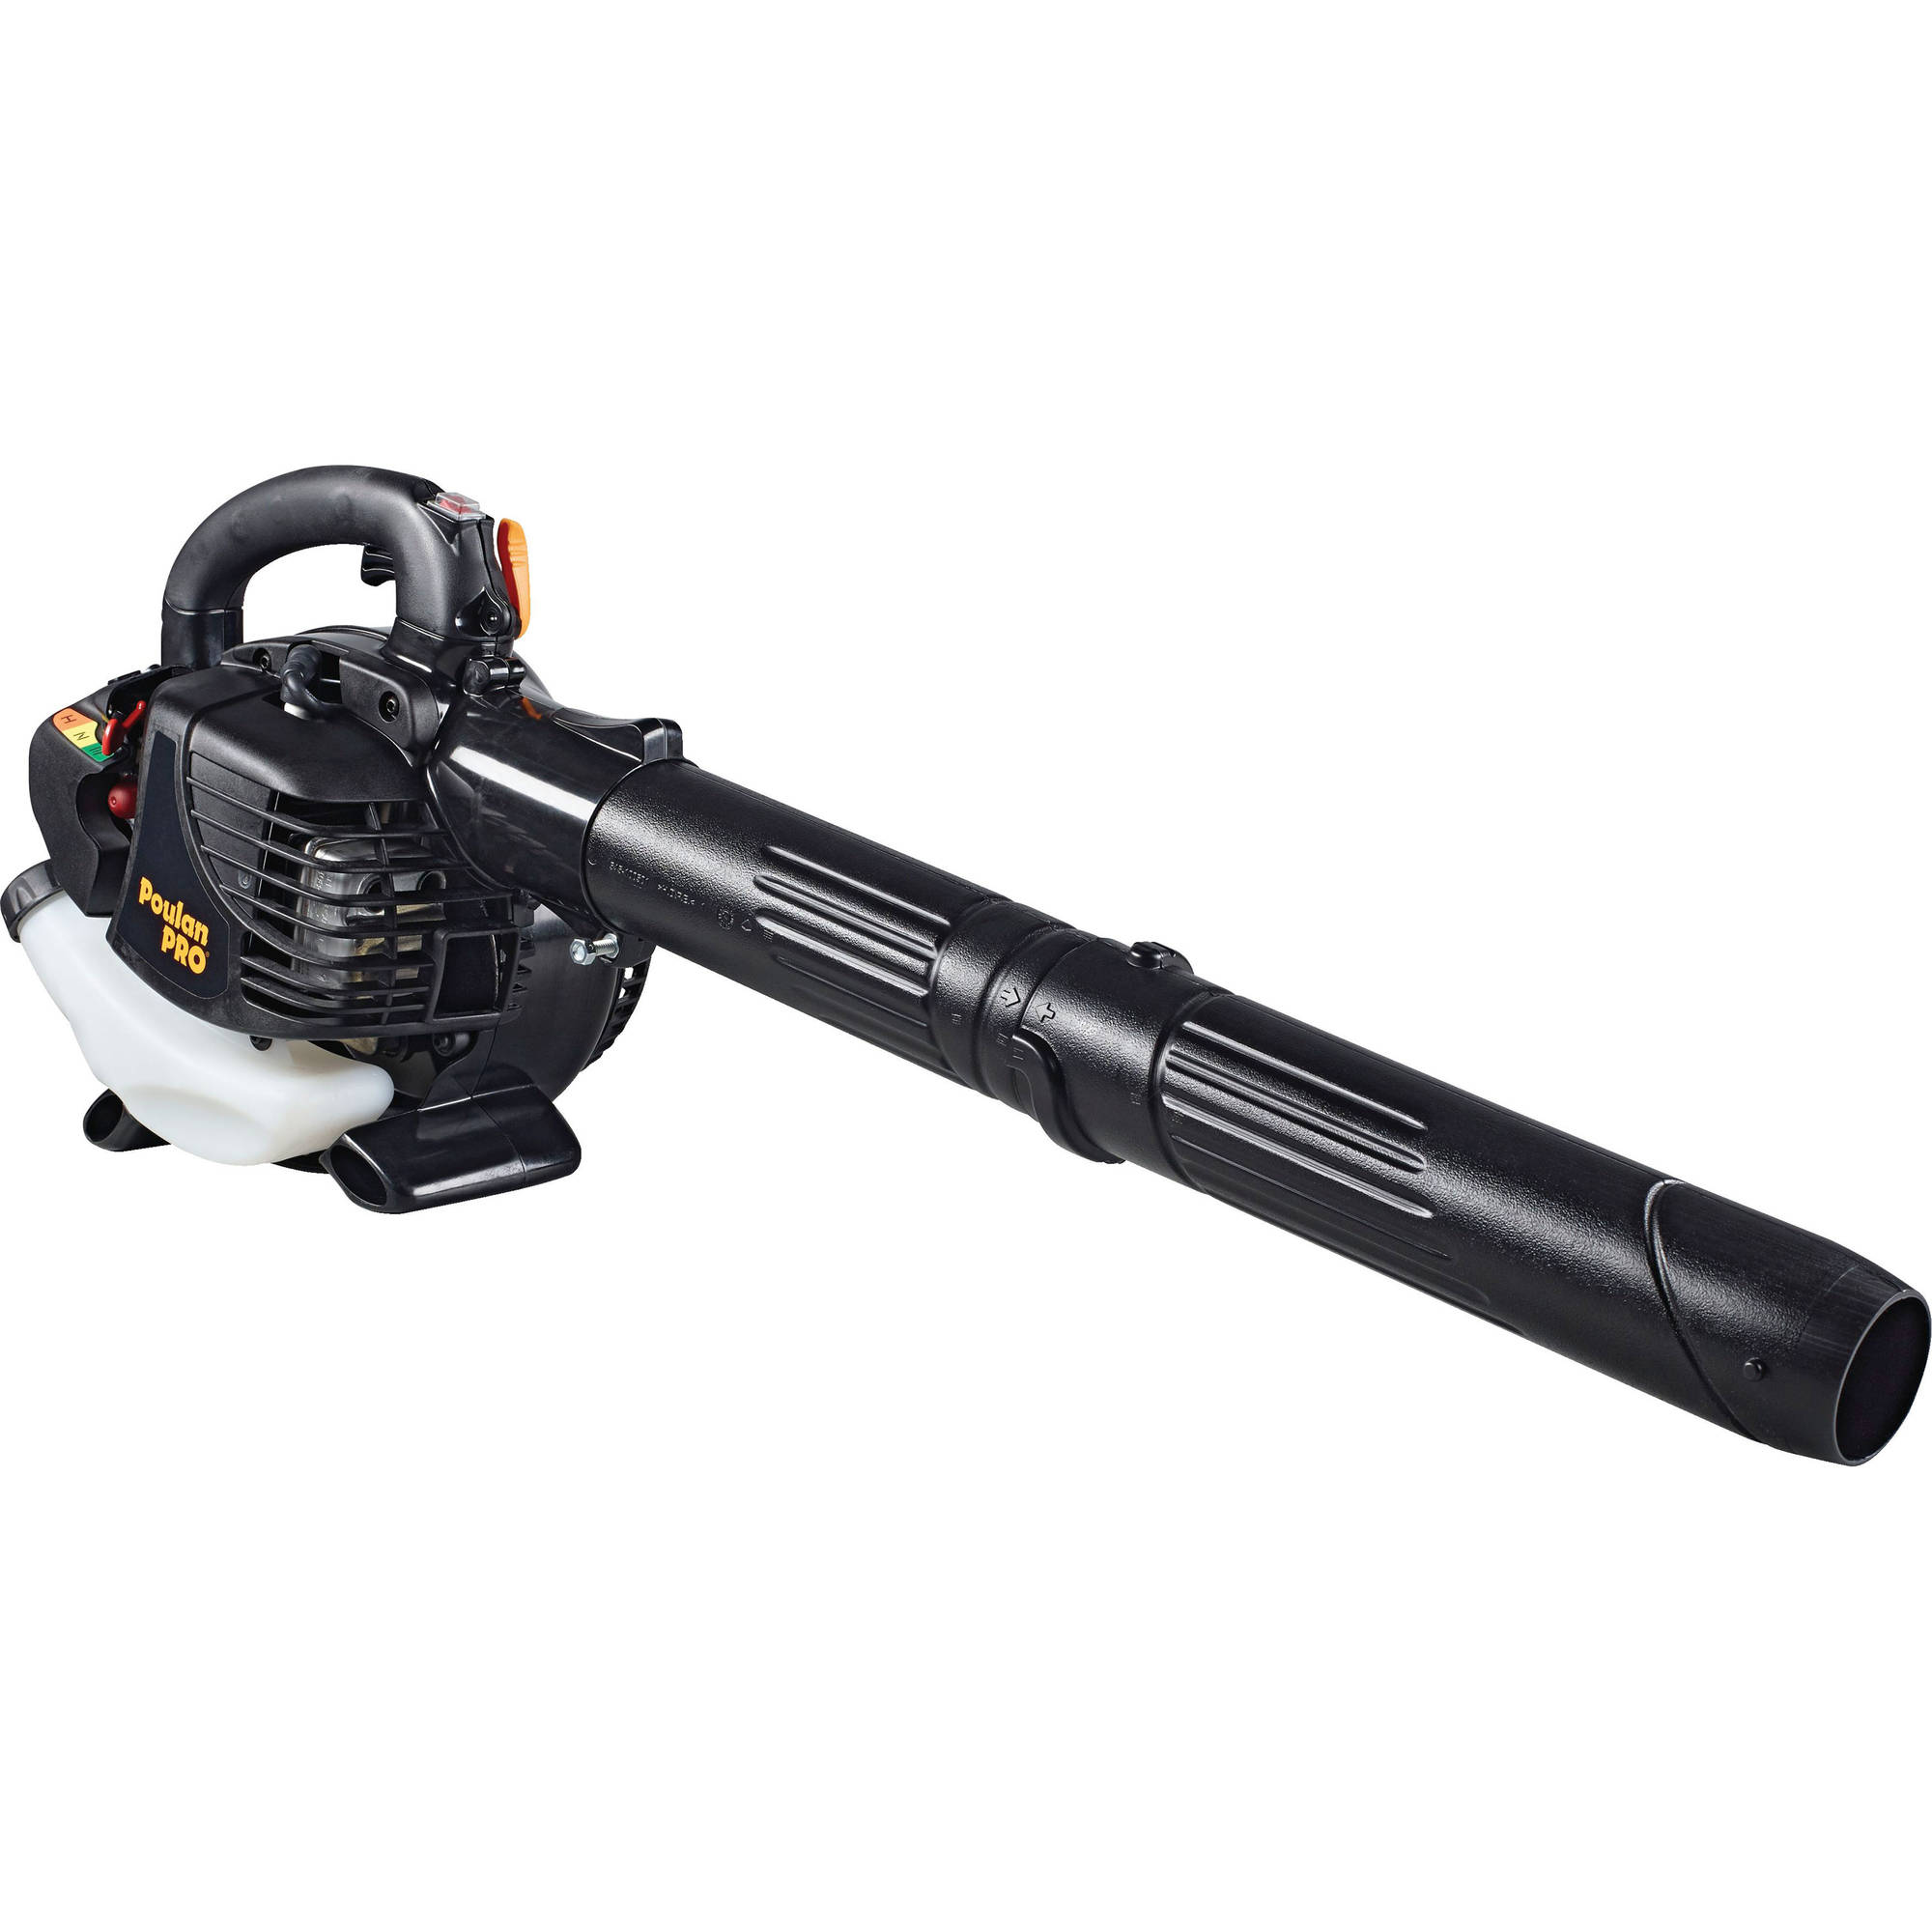 Poulan Pro 430 CFM/215 MPH 2-Cycle 25cc Gas Blower with Cruise Control